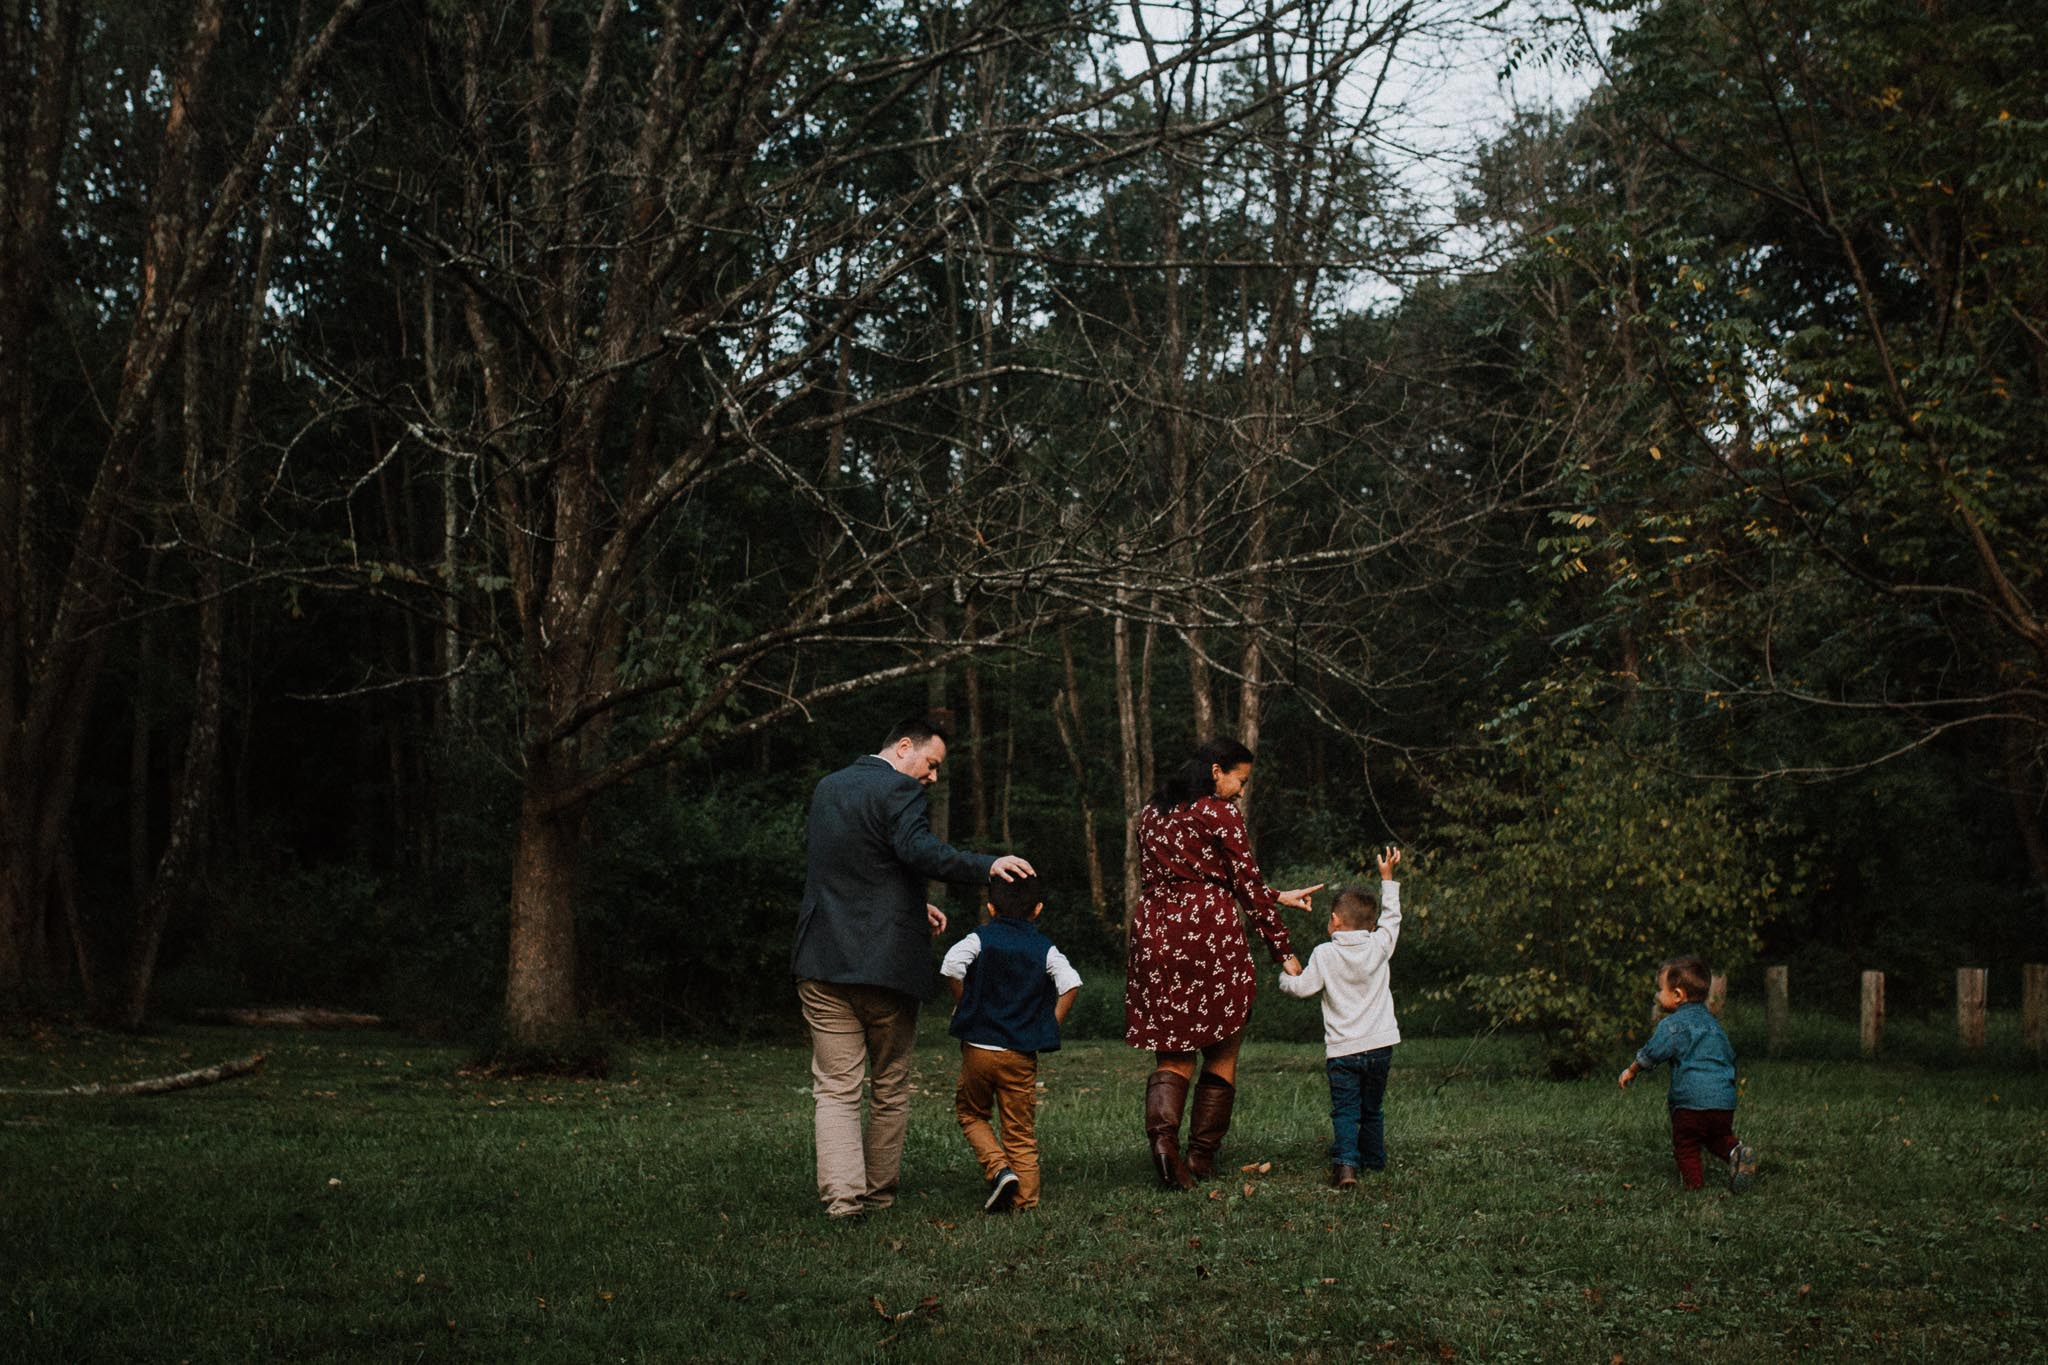 family of five Family Lifestyle Documentary Sunset Golden Hour Izaak Walton League Leesburg Loudoun Virginia Marti Austin Photography